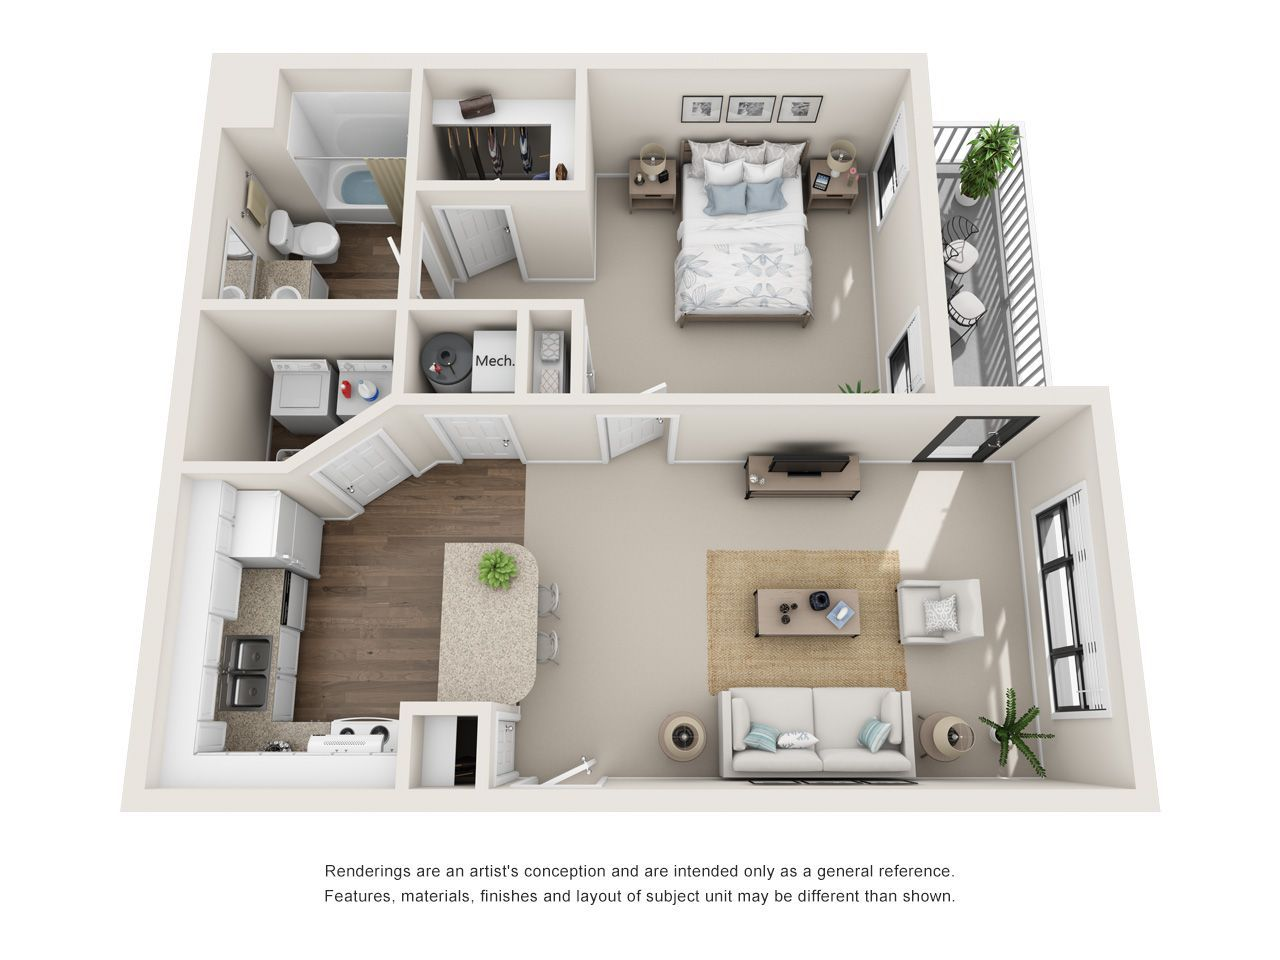 Can You Get An Apartment At 18 In Georgia 1 3 Bedroom Lawrenceville Apartments Floor Plans Lawrenceville Georgia Apartment In 2020 Apartment Floor Plan Small Apartment Floor Plans Apartment Floor Plans